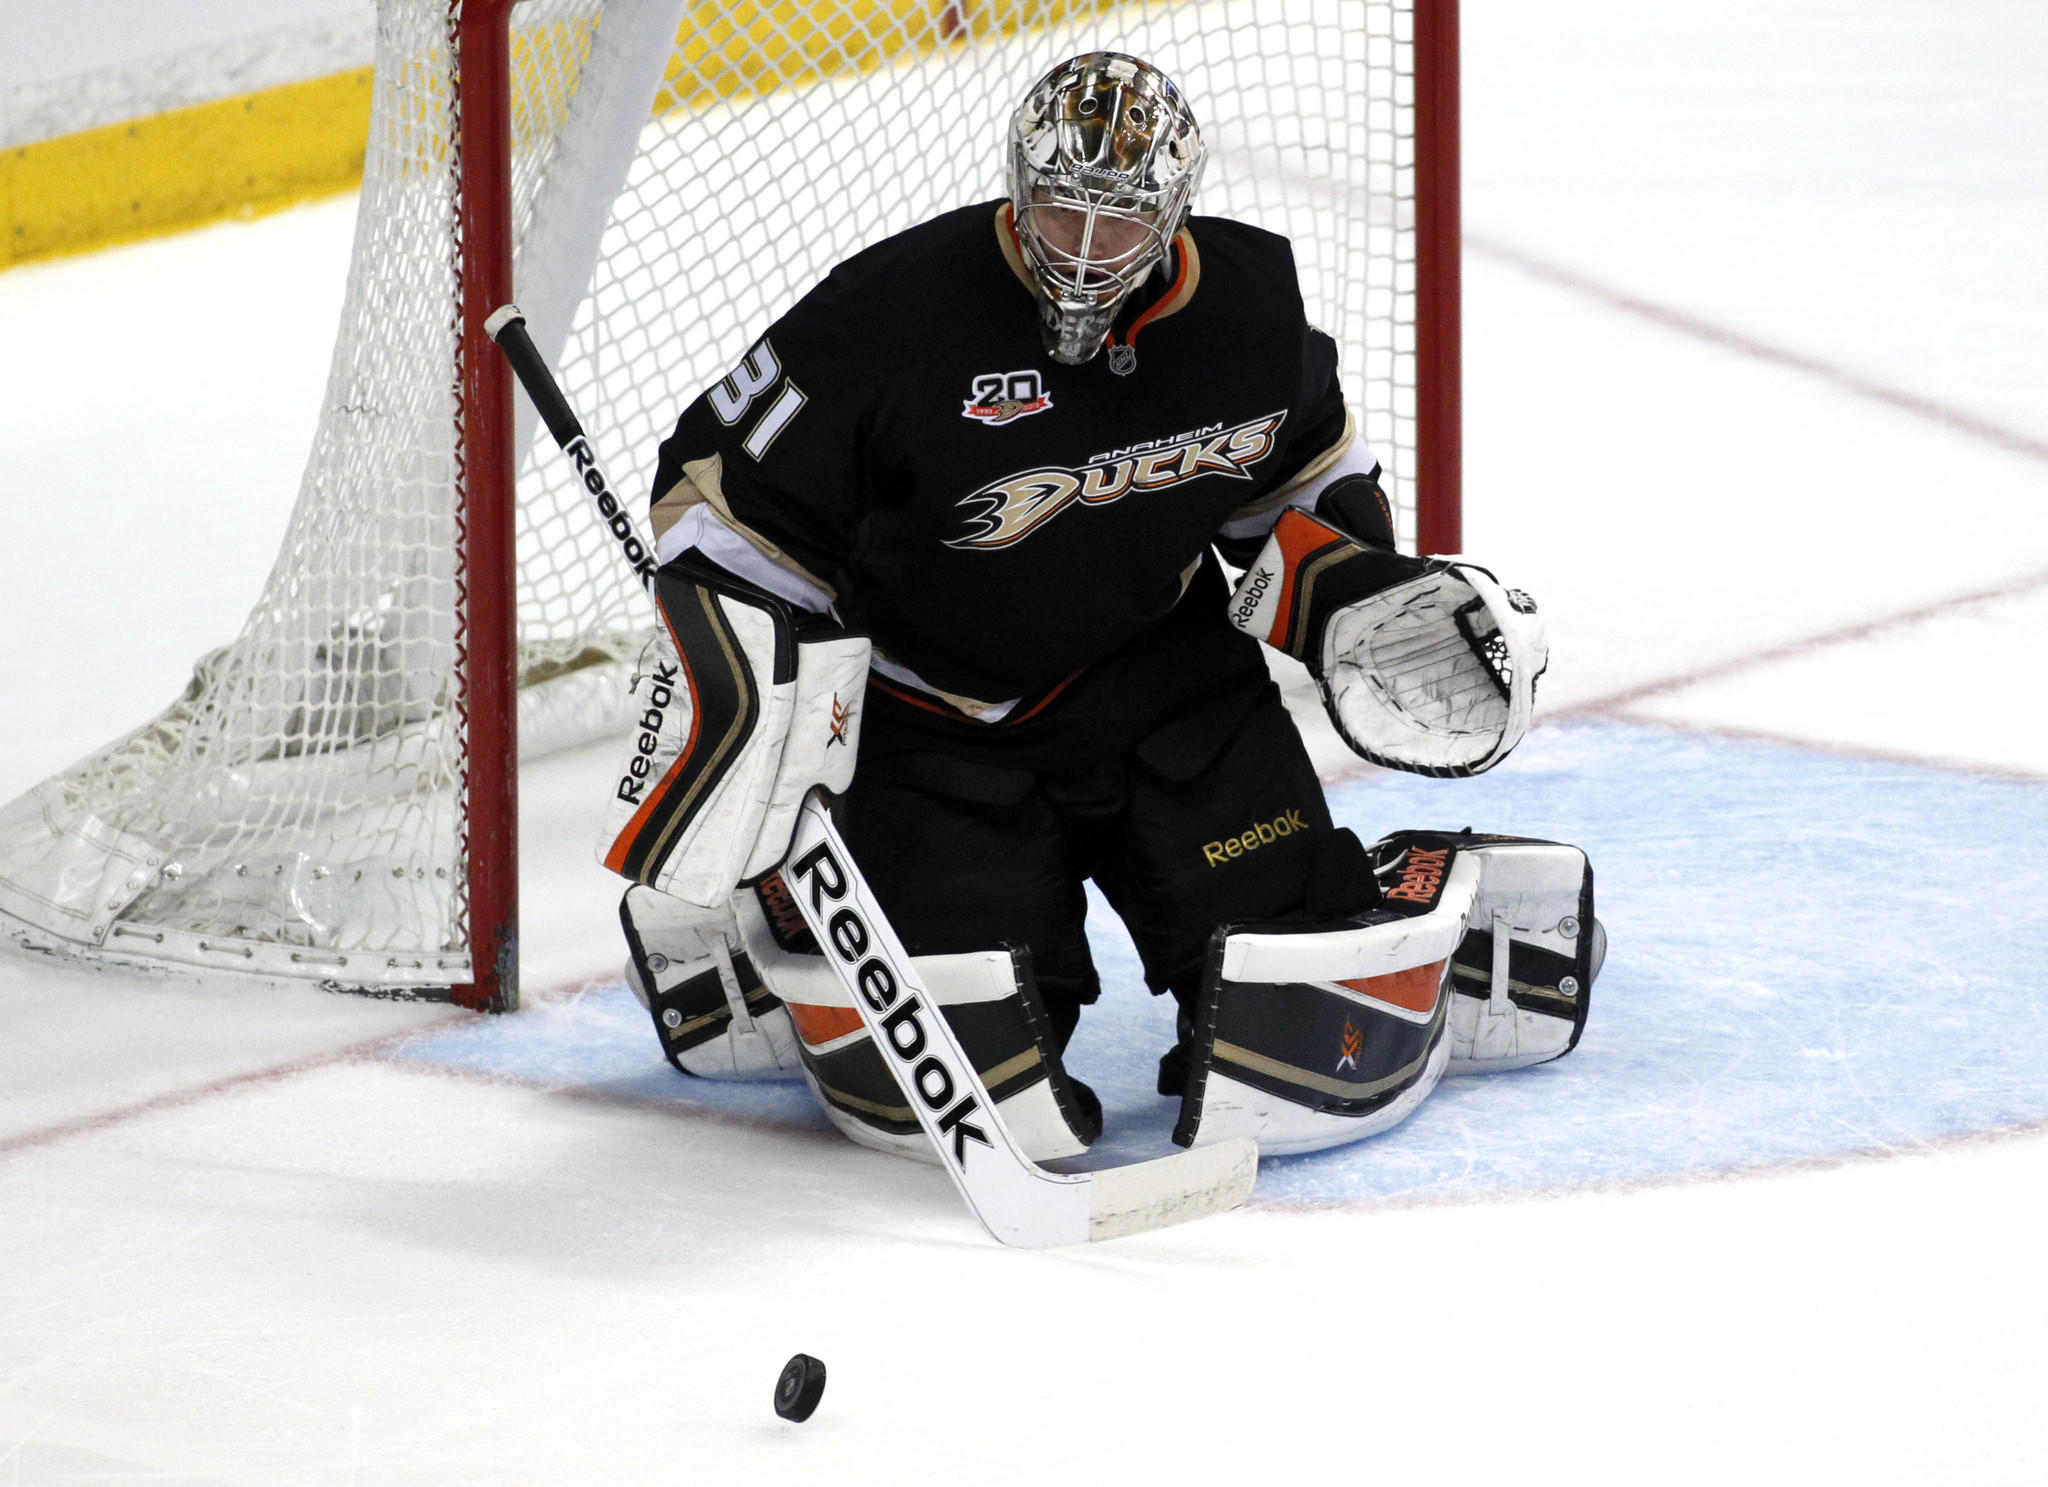 Frederik Andersen will start Game 1 of the playoffs for the Ducks.